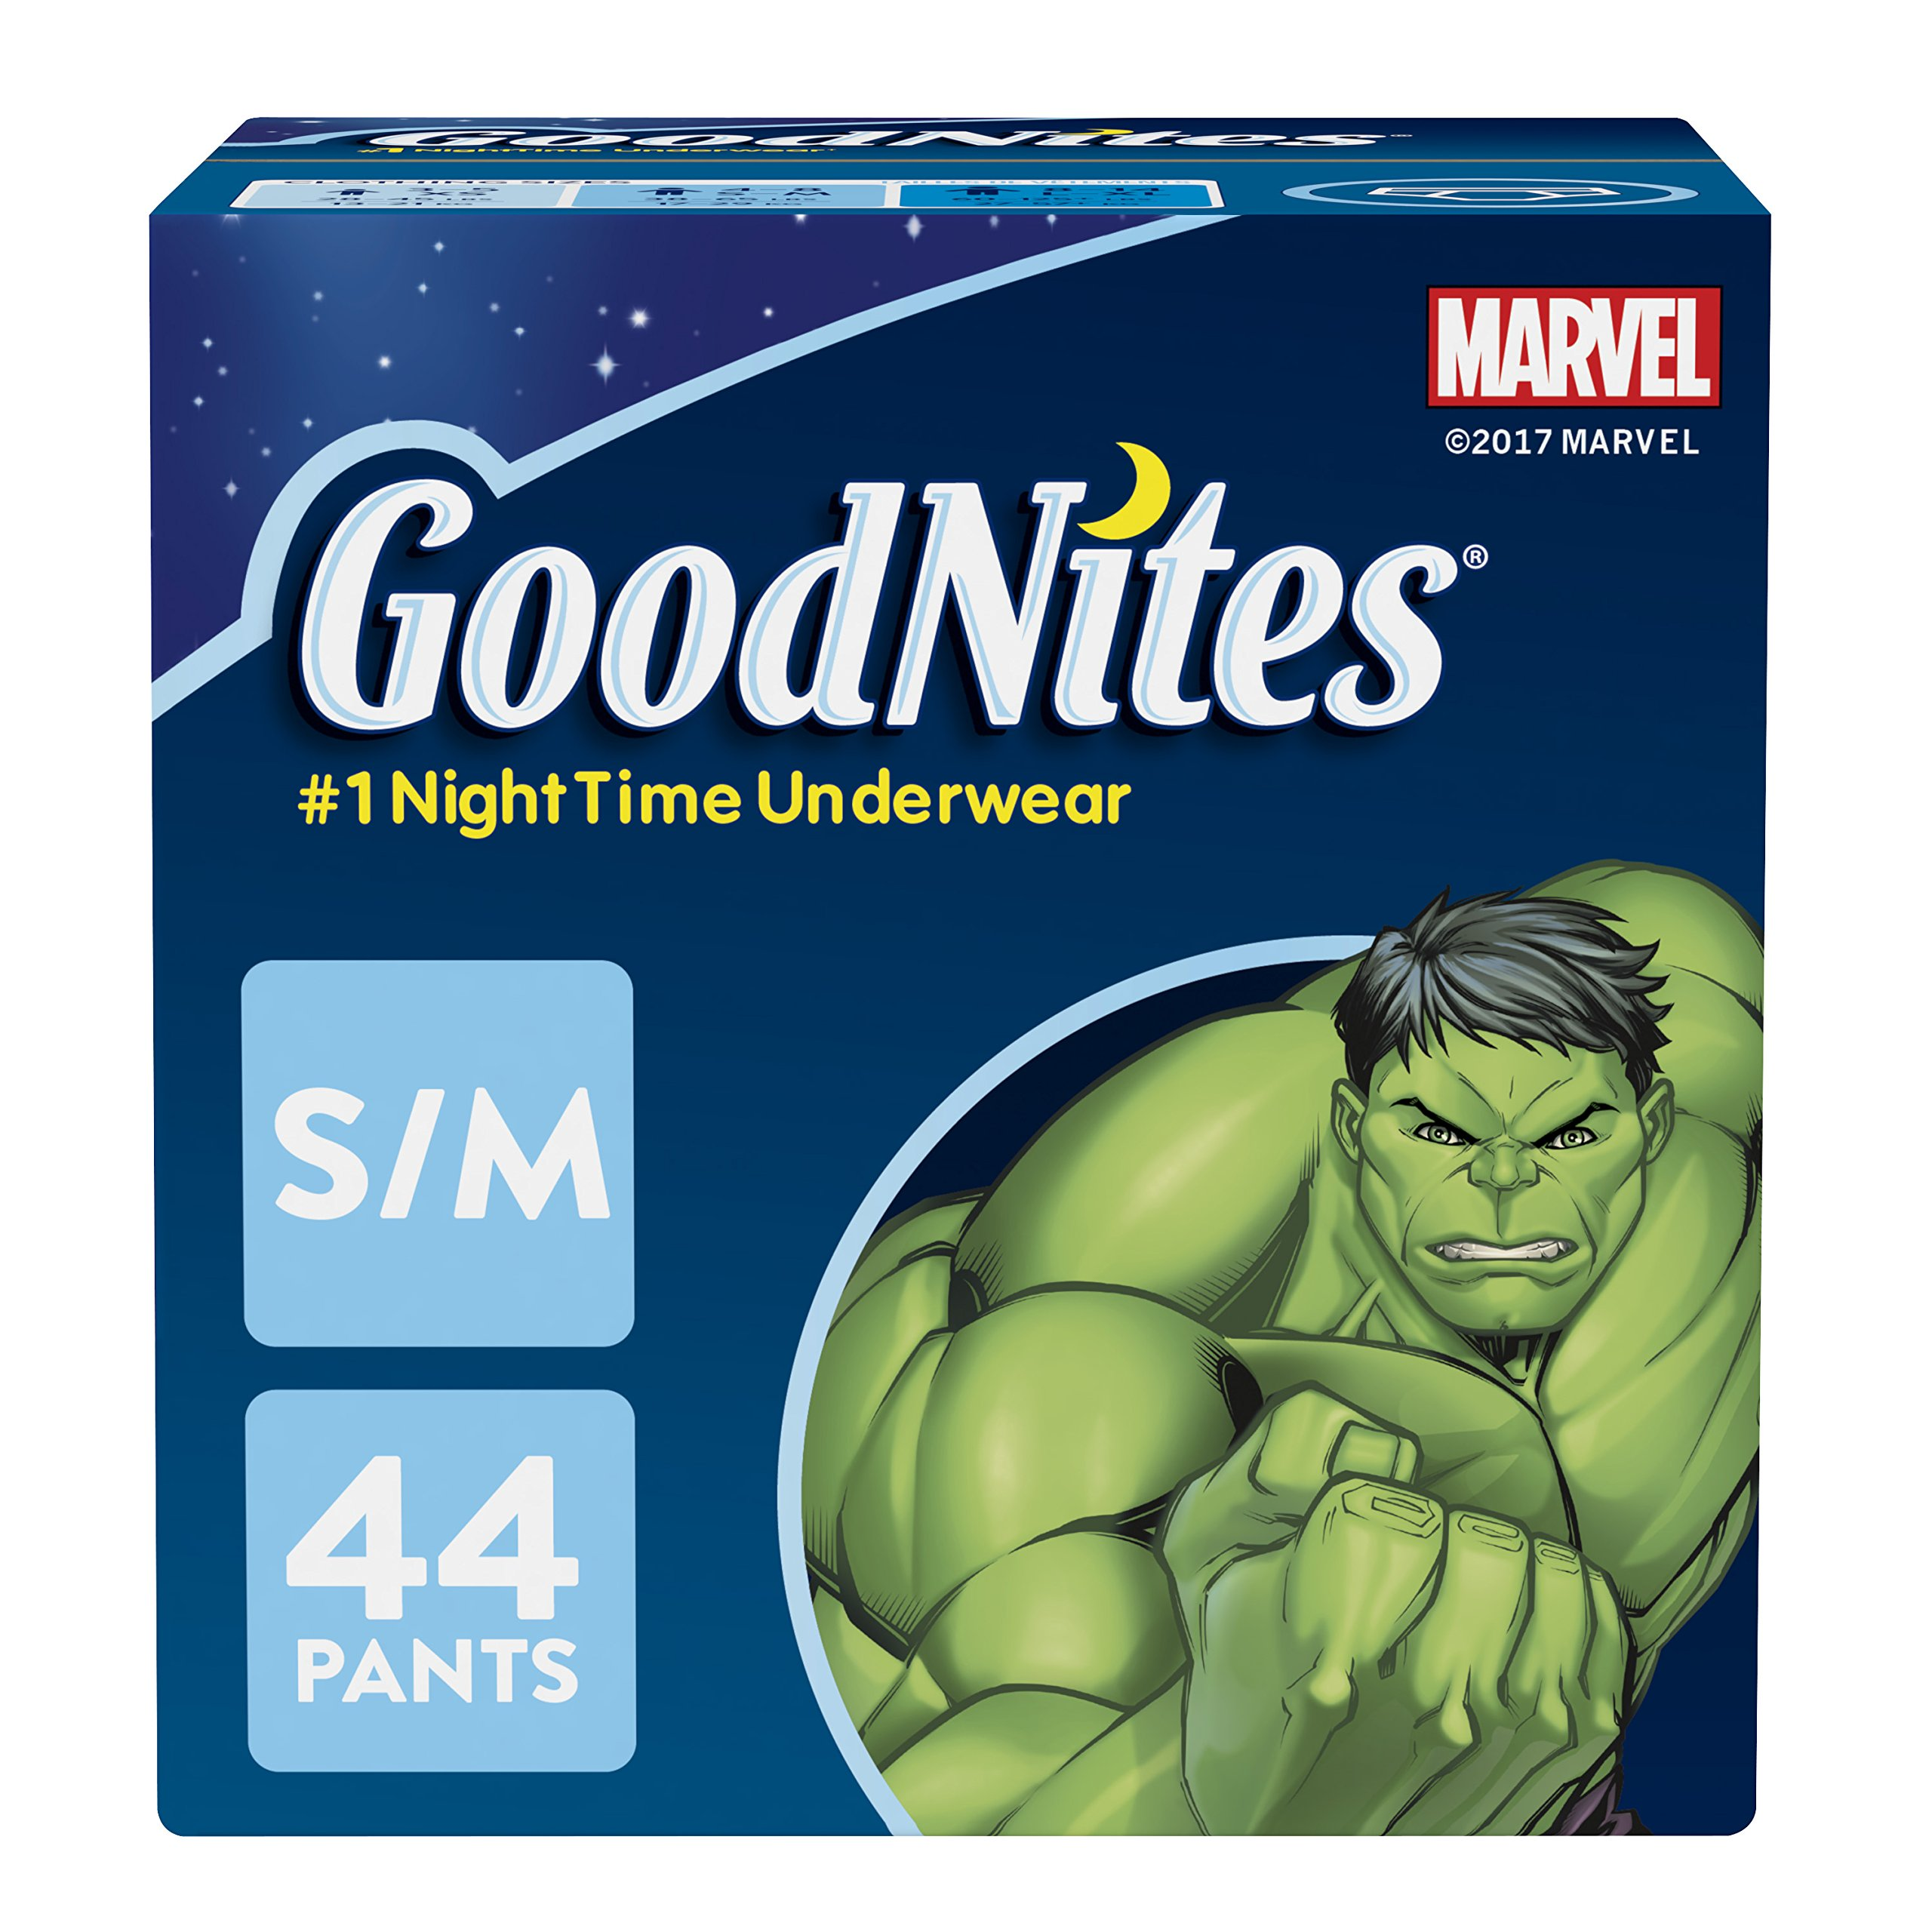 GoodNites Bedtime Bedwetting Underwear for Boys, S-M (38-65 lb), 44 Ct. (Packaging May Vary)